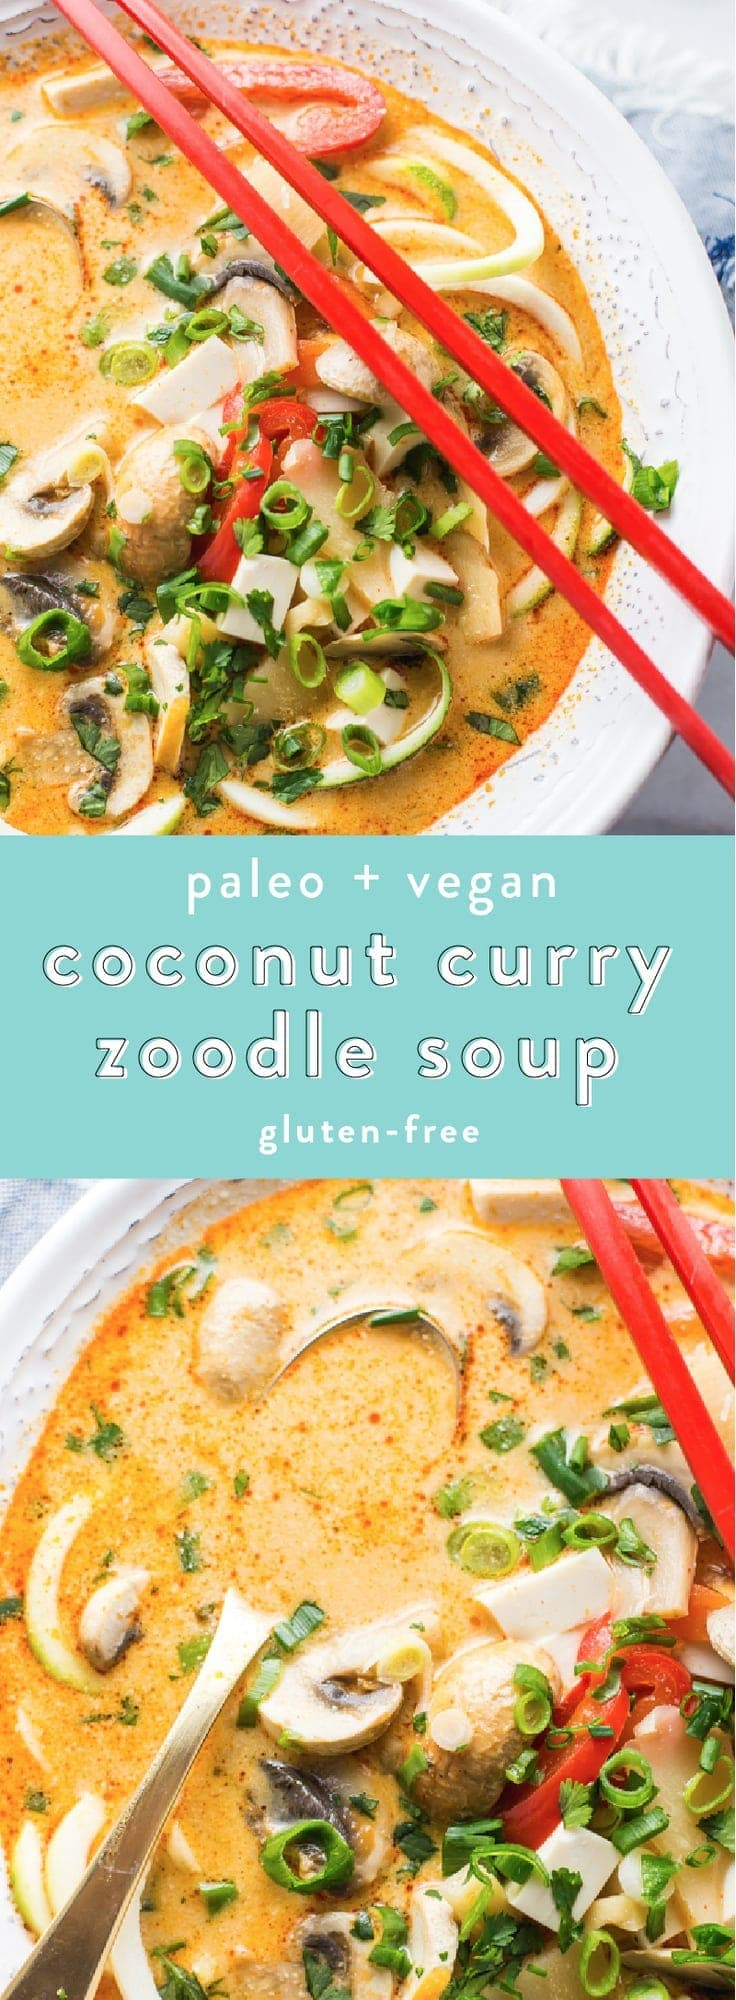 This paleo coconut curry zoodle soup is quick and delicious, loaded with creamy coconut milk, intensely flavorful red curry paste, and zoodles. This recipe is a wonderful paleo dinner or paleo soup recipe to add to your collection. Low carb yet filling, you can make this paleo coconut curry zoodle soup a vegan coconut curry zoodle soup with an easy swap!